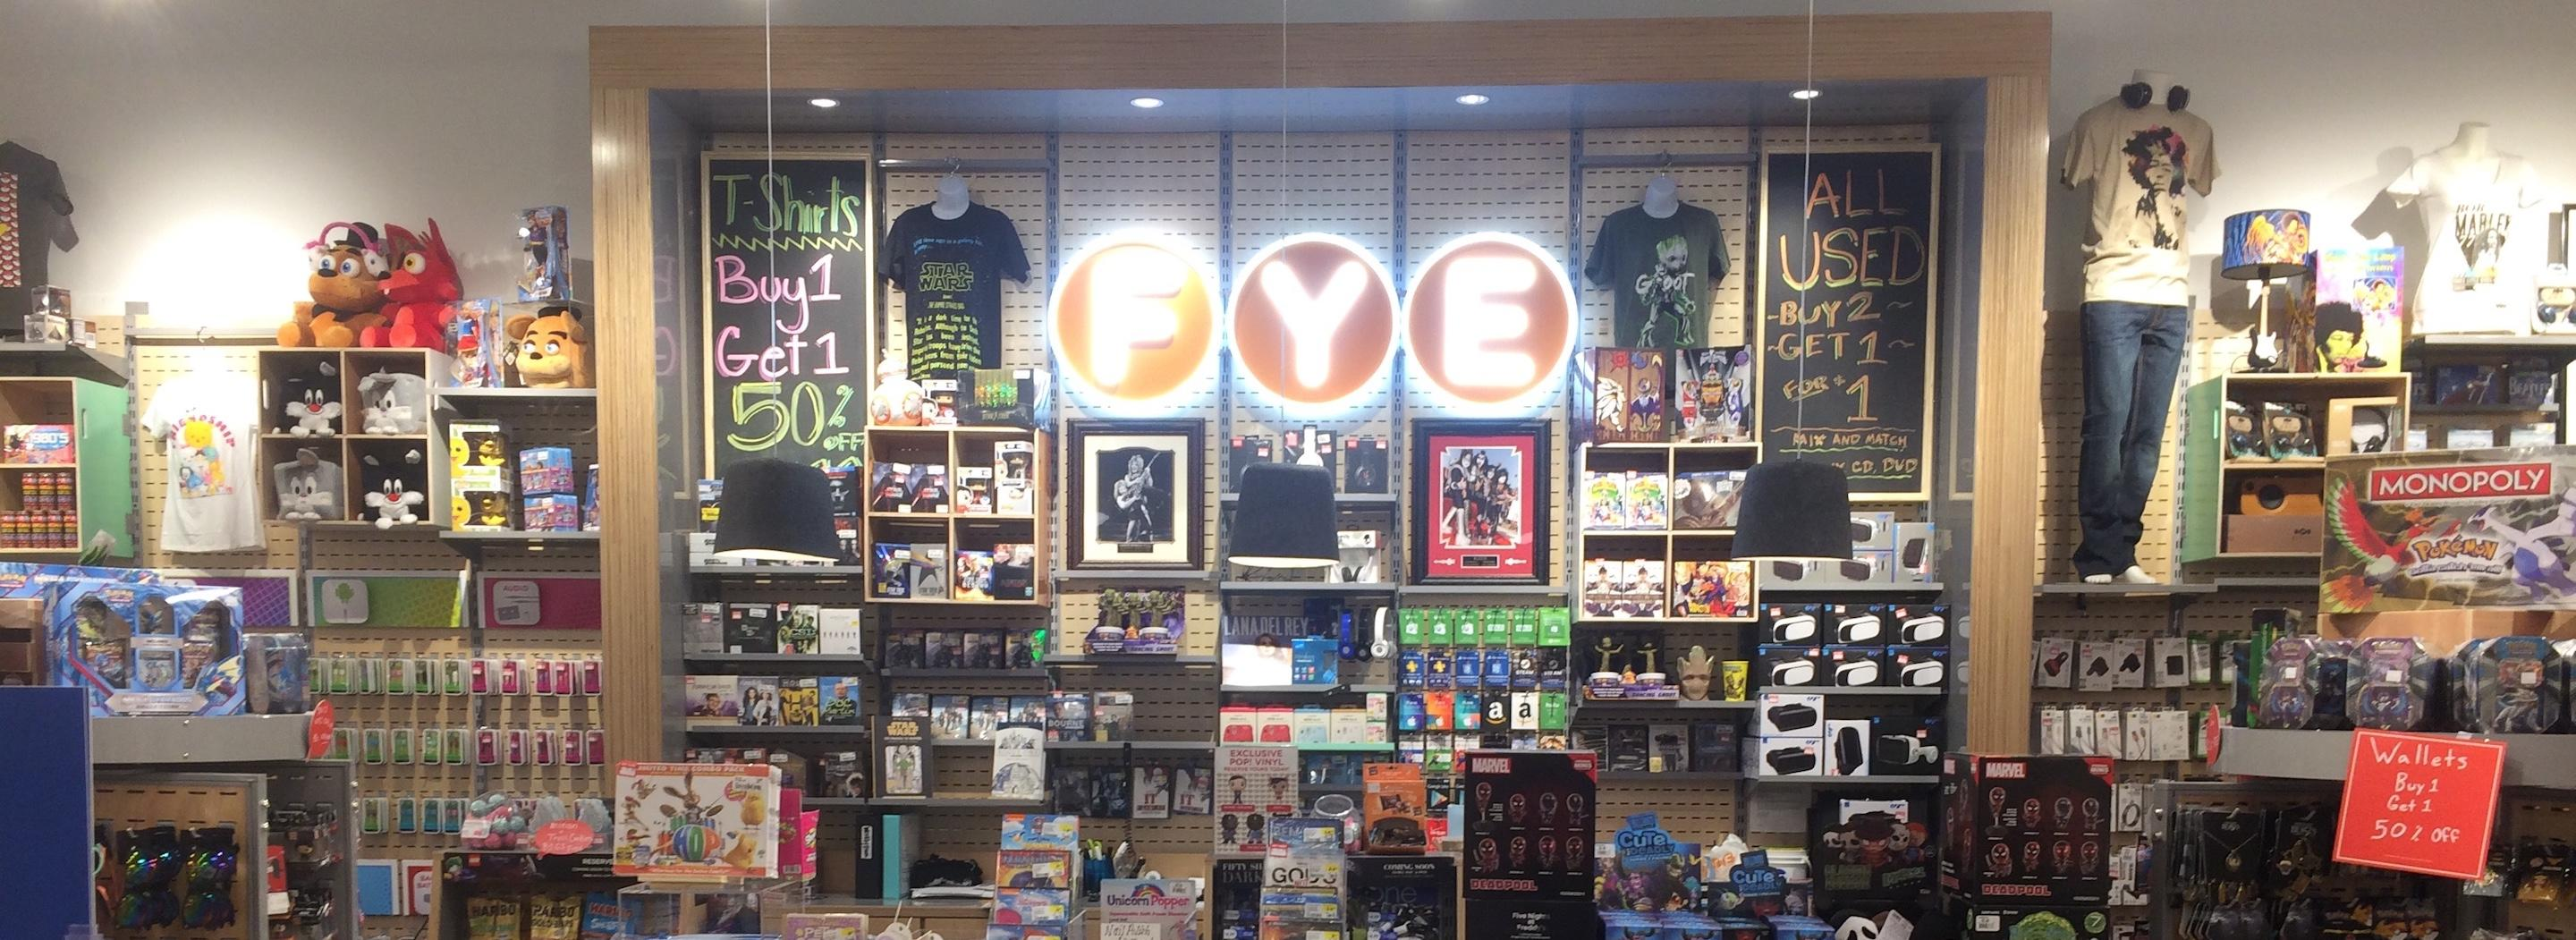 Navigate to image of FYE store experience